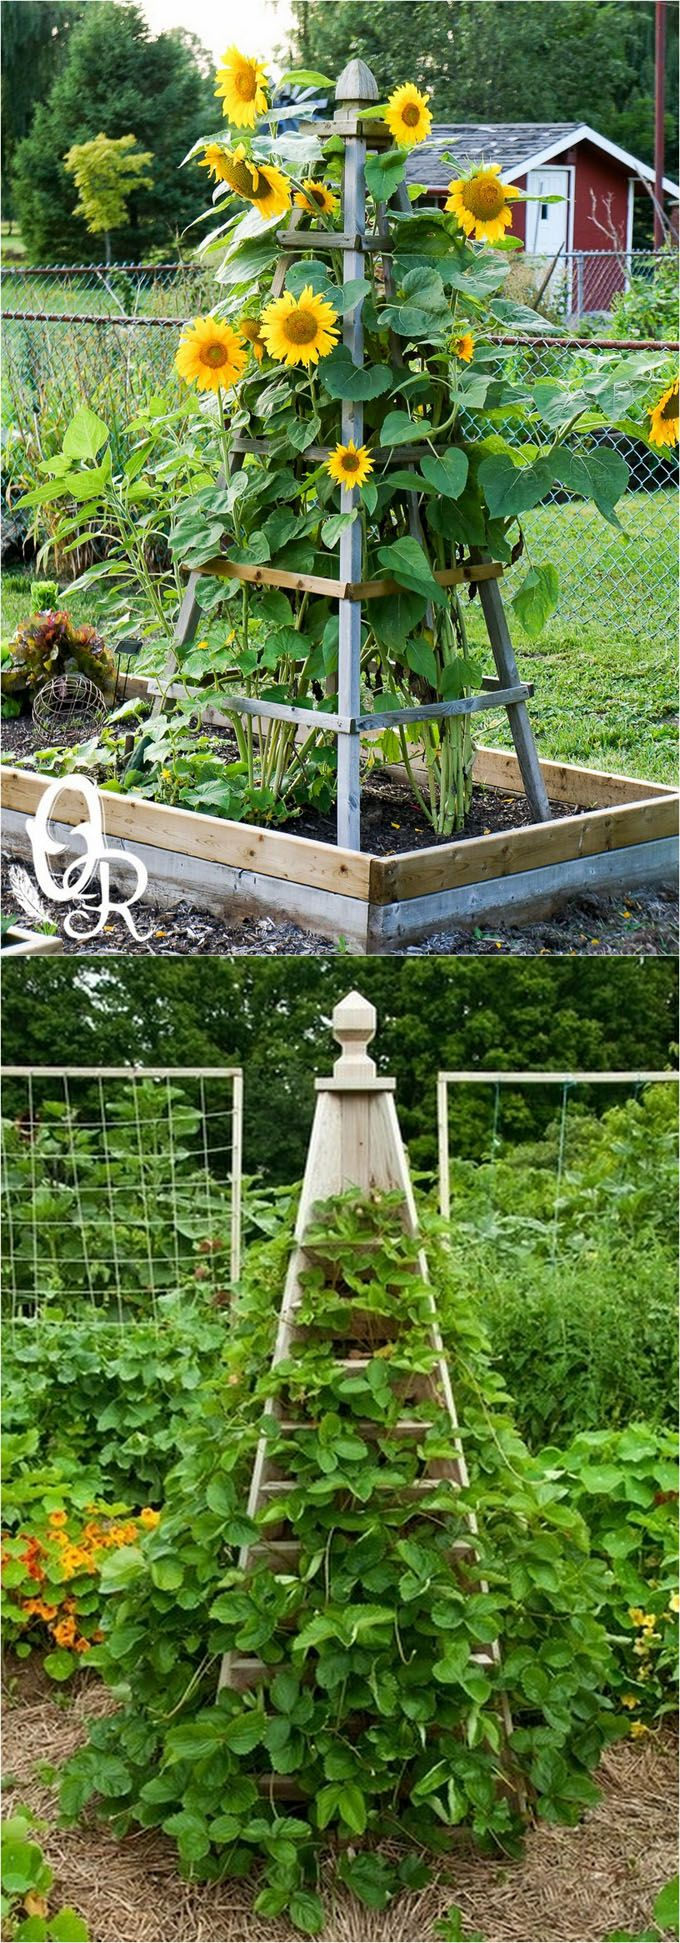 Medium Crop Of Garden Structures Ideas